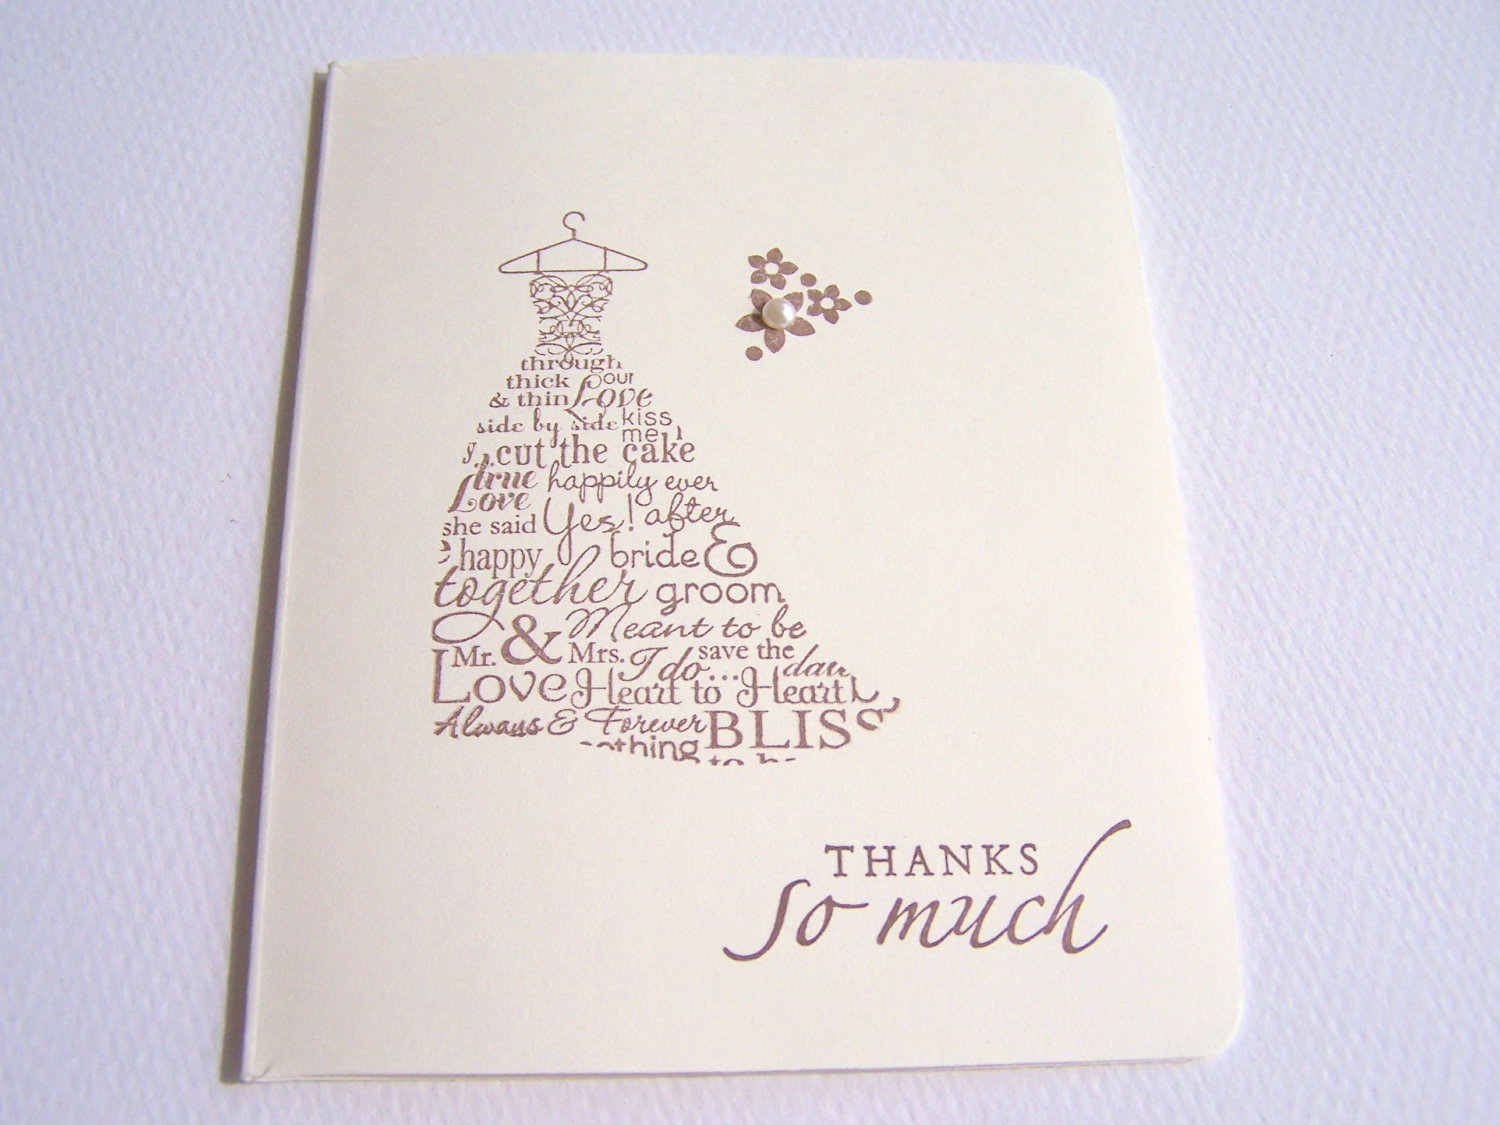 Wedding Gift Thank You Greetings : Wedding Thank you Card Thank You Cards Memory Moments